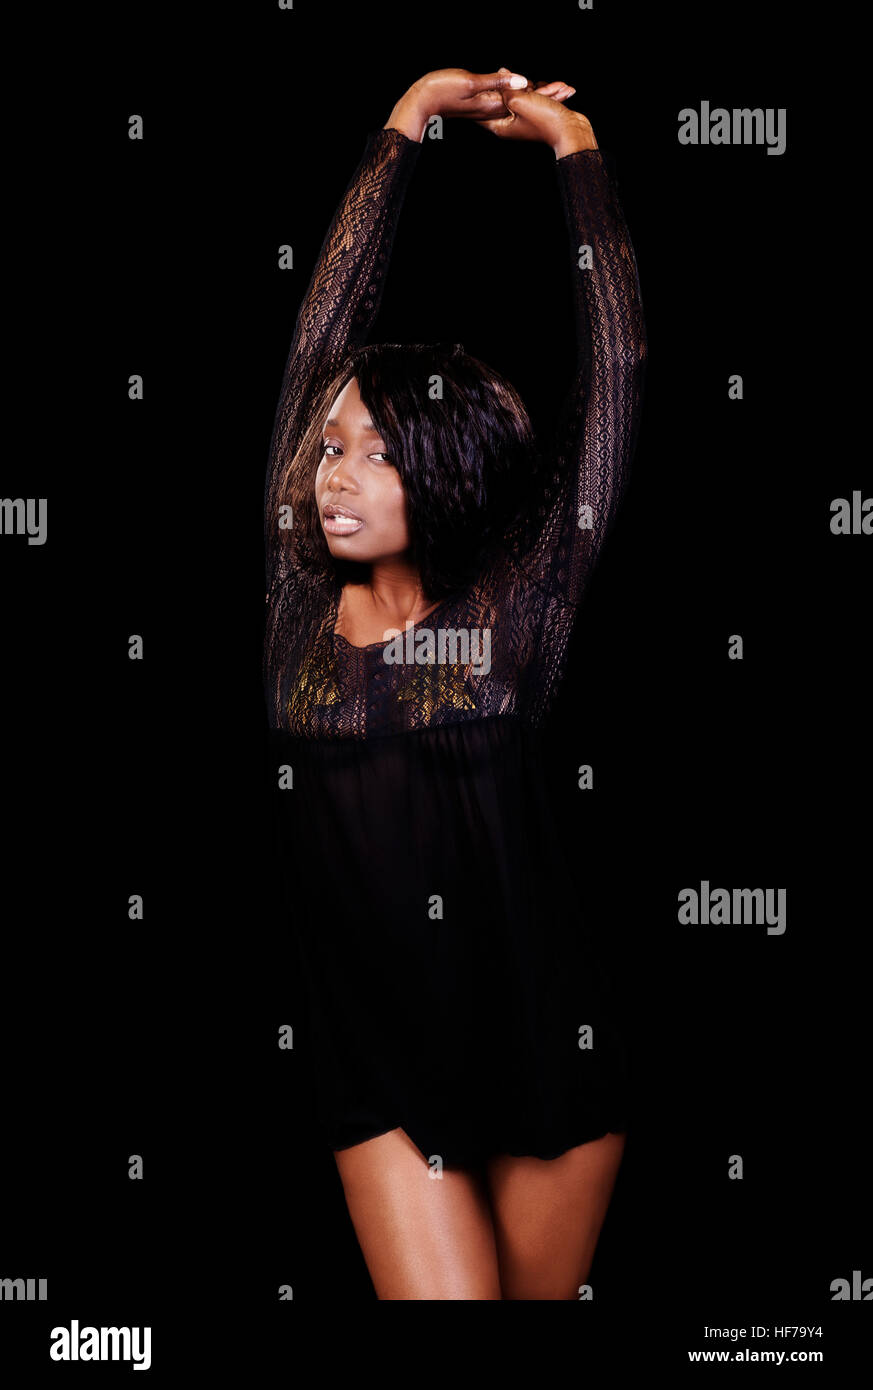 Attractive African American Woman In Black Nightie On Dark Background Standing With Arms Up Stock Photo